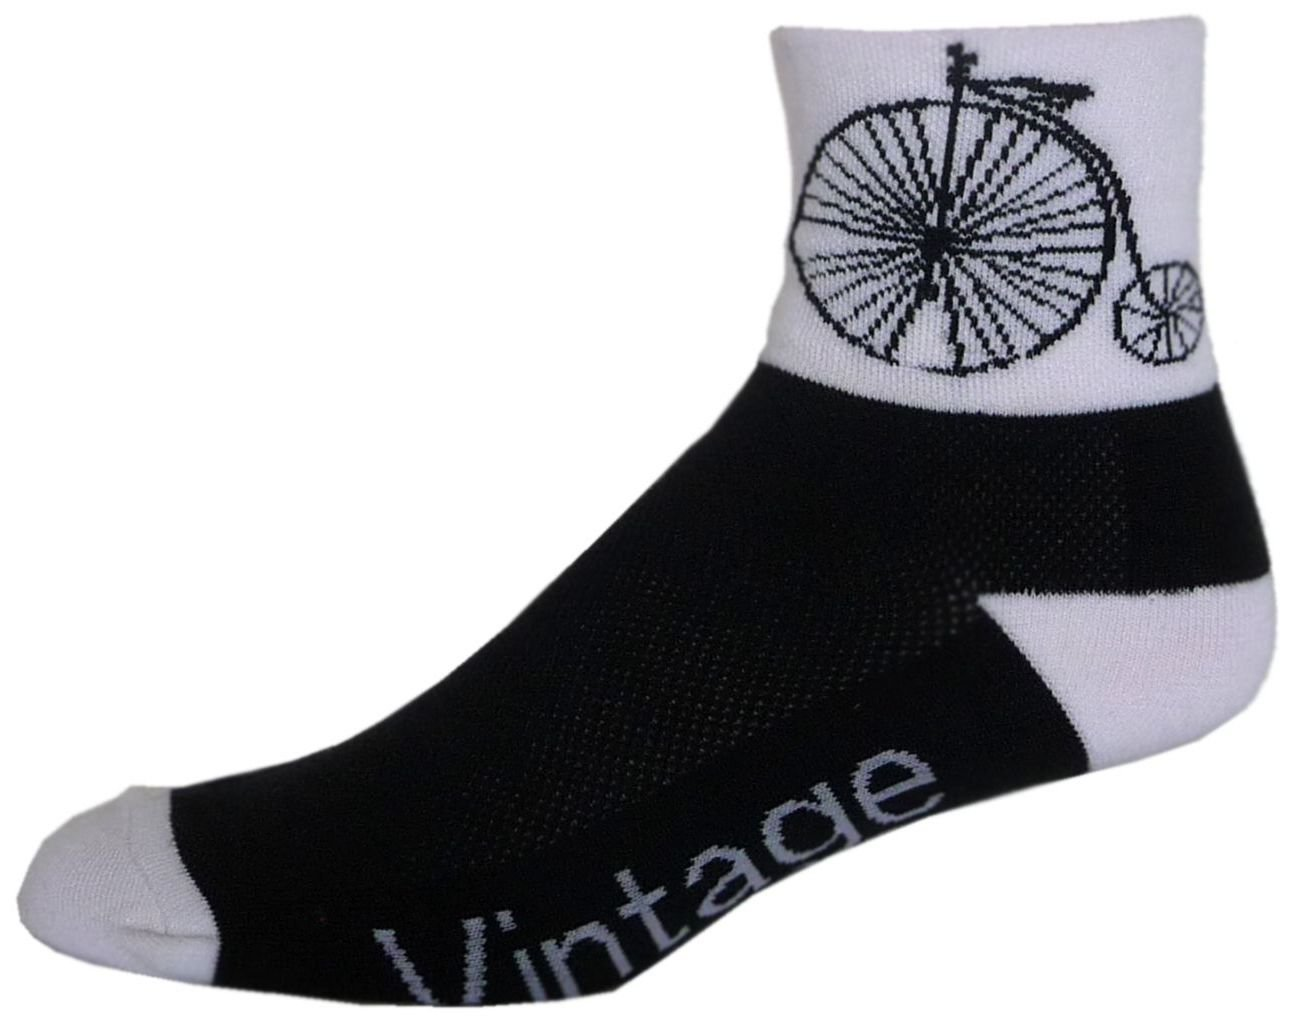 NLZ Vintage Bike Cycling Socks